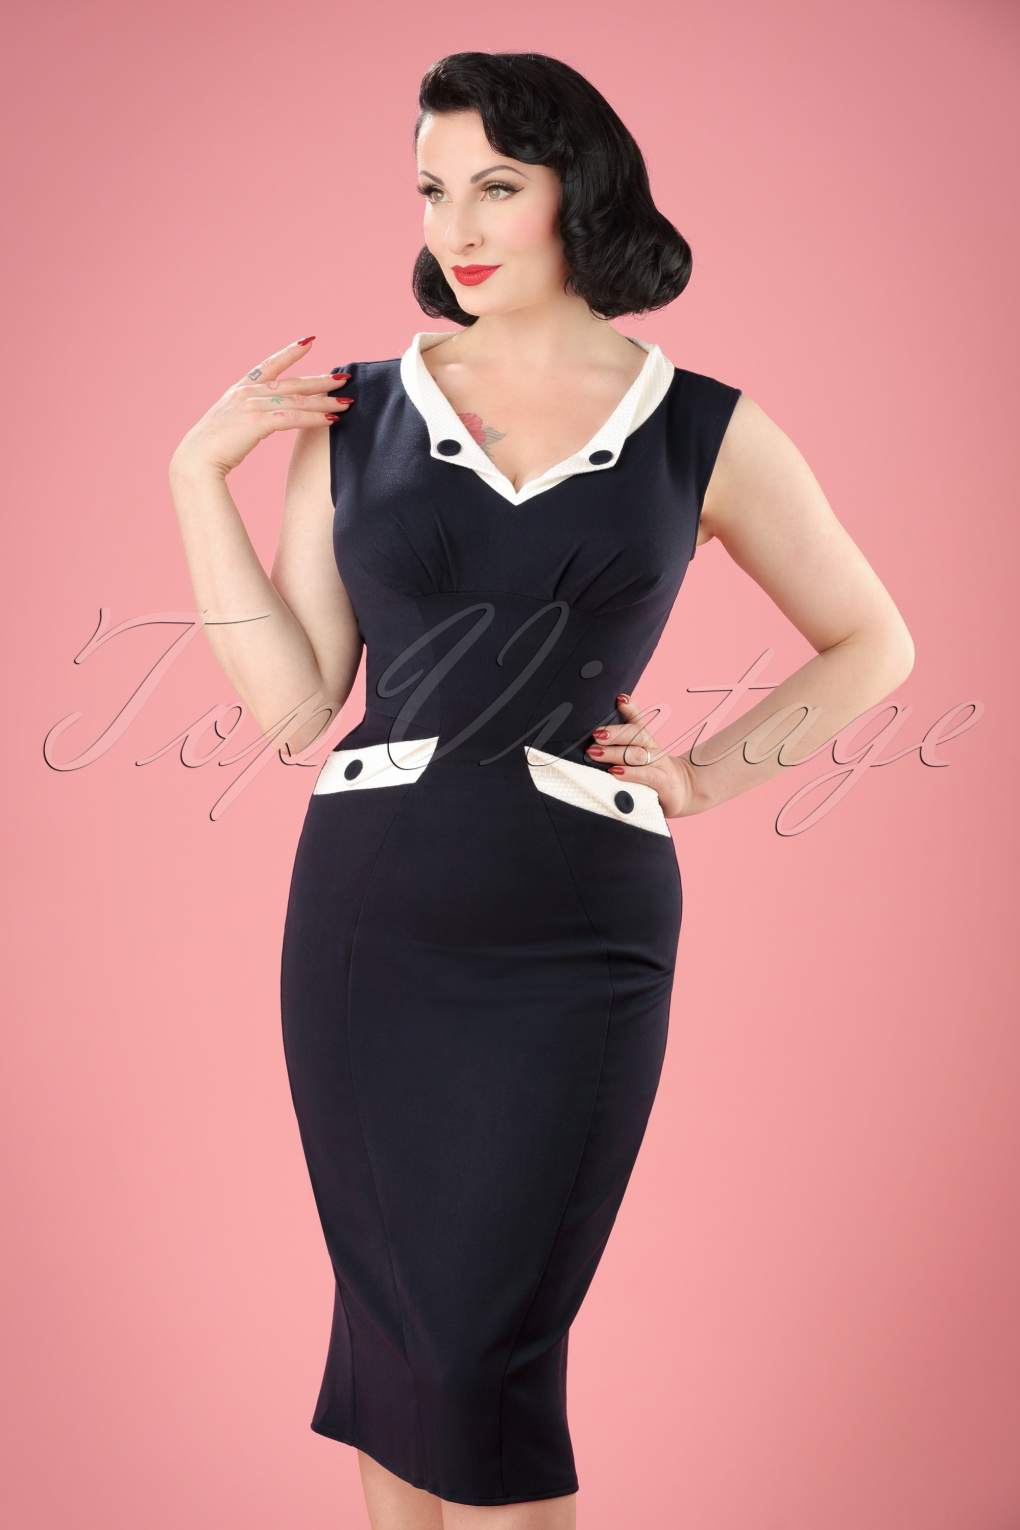 1960s Style Dresses- Retro Inspired Fashion 50s Signe Lee Pencil Dress in Navy and White £63.67 AT vintagedancer.com